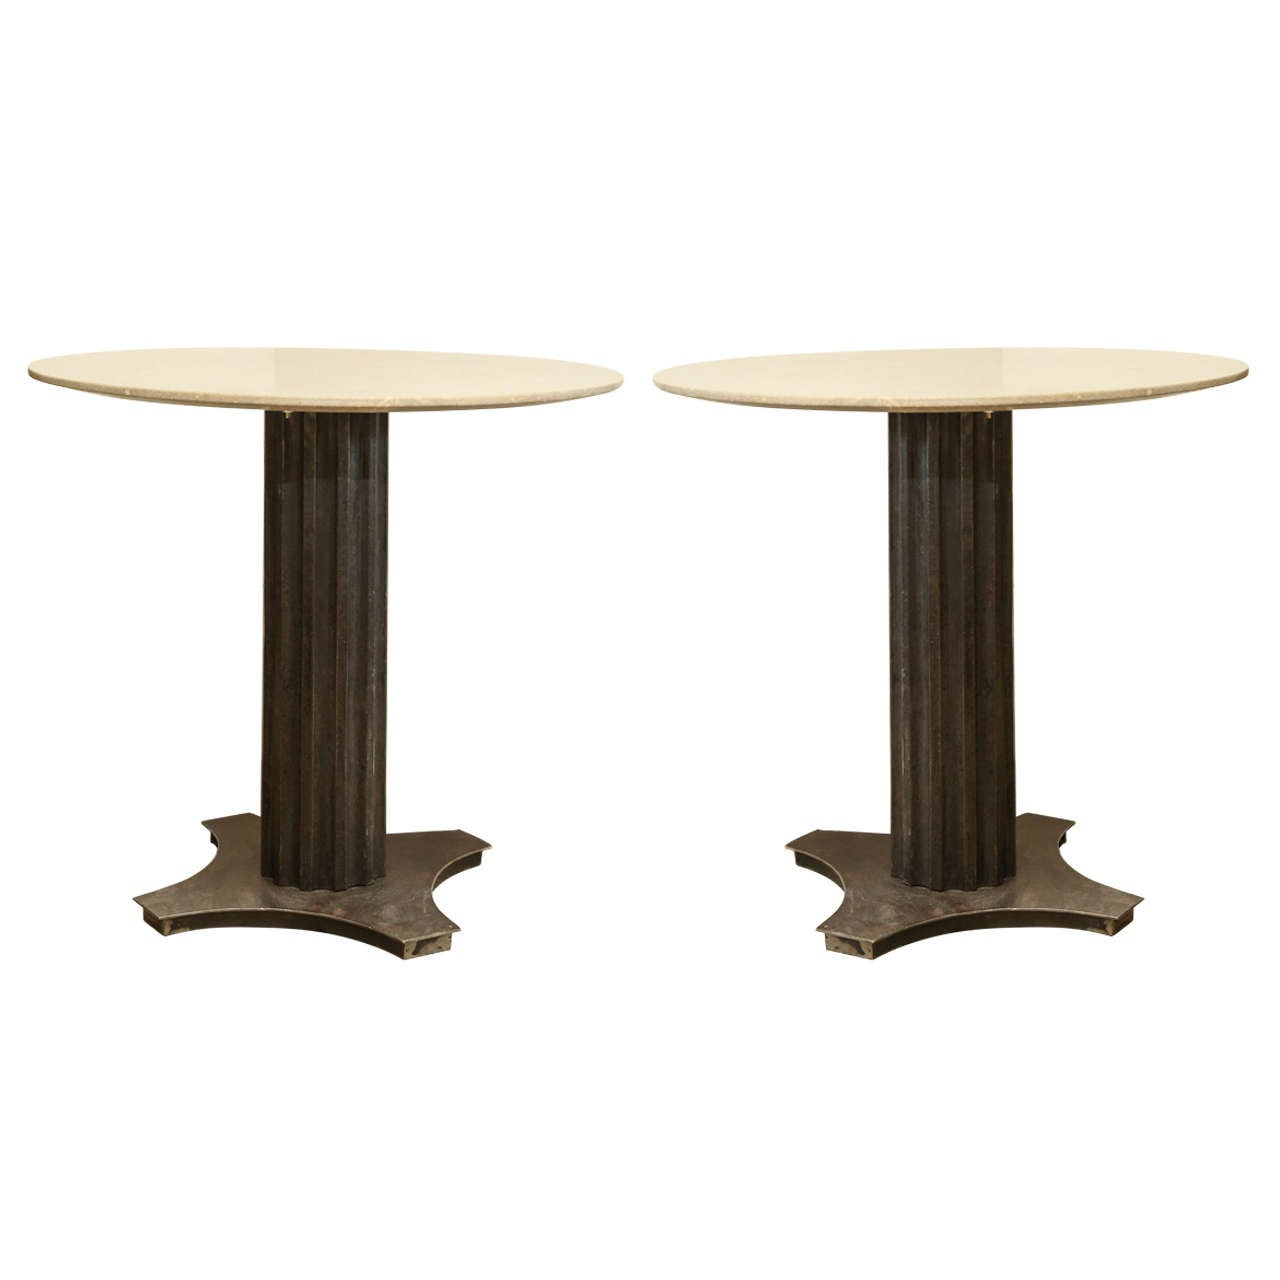 Two Fluted Iron and Stone Side Tables